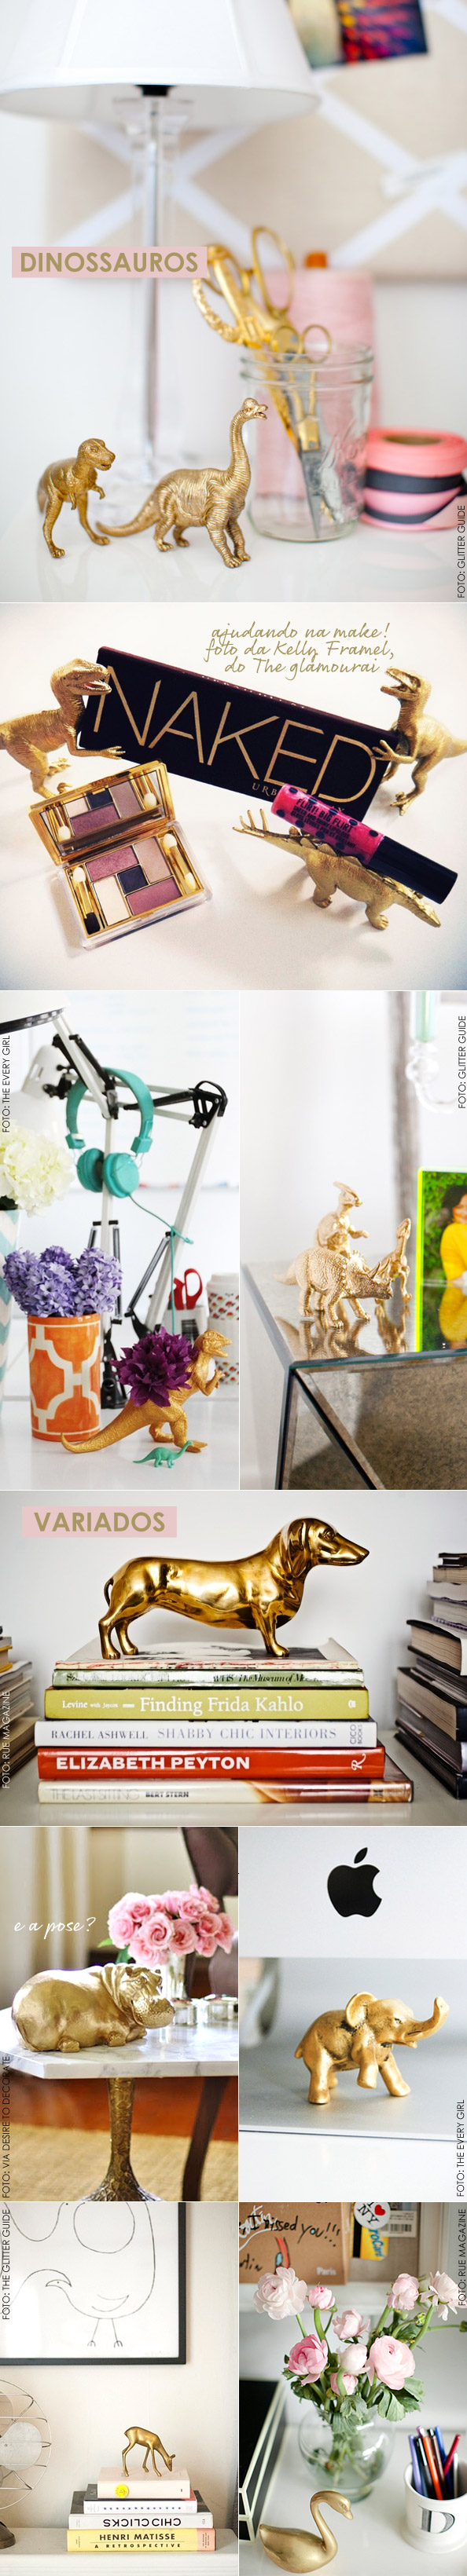 DIY: Spray Paint Plastic Animals